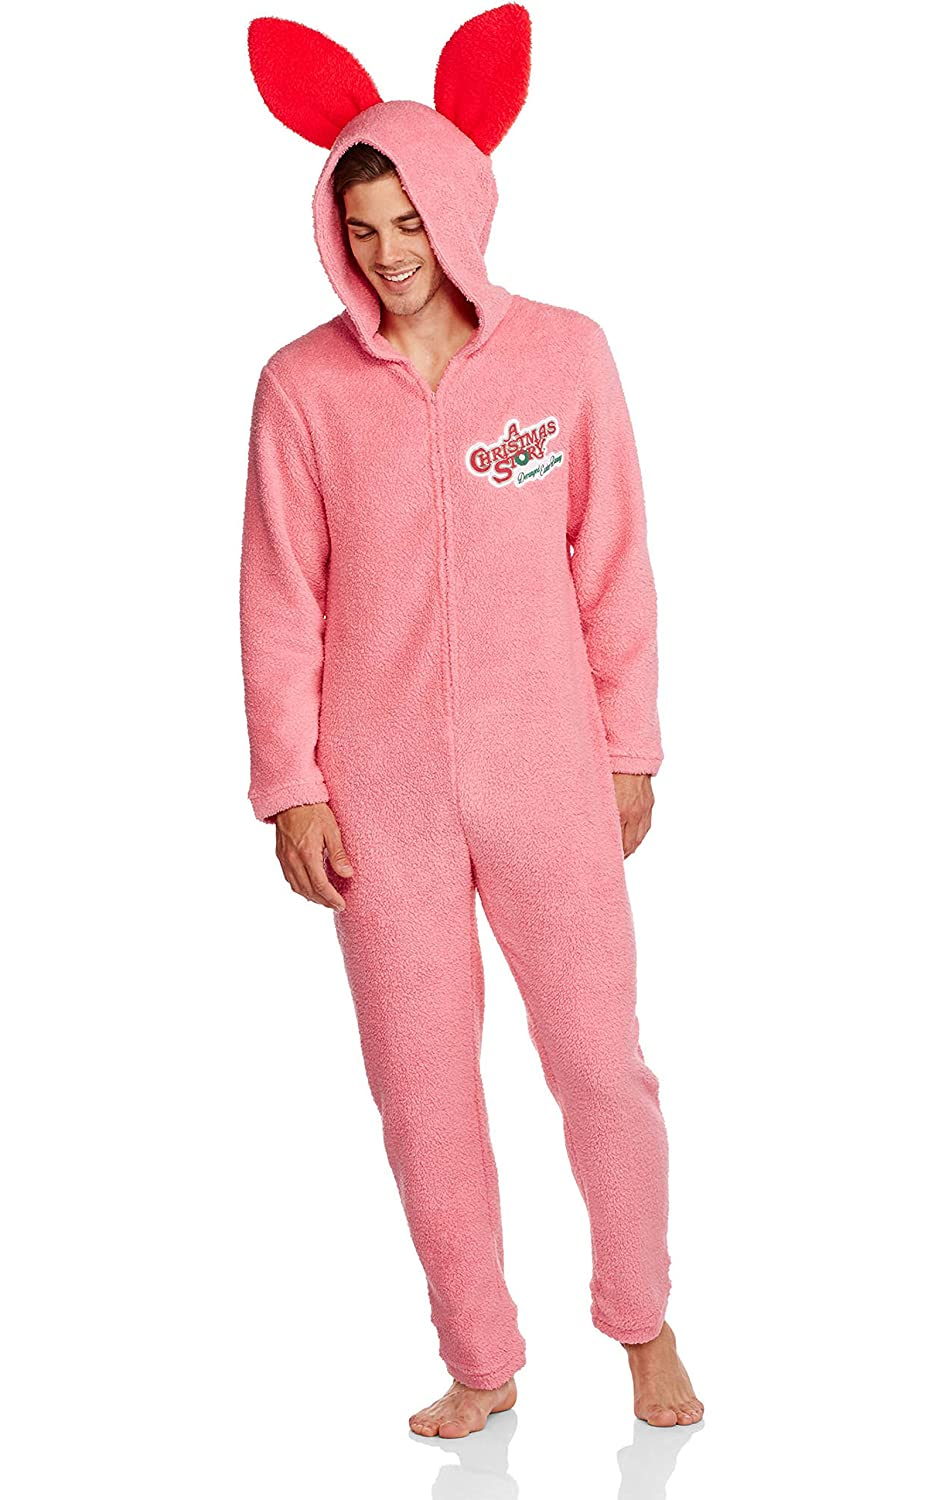 A Christmas Story Men's Pink Bunny Union Suit Pajama CY026MBS